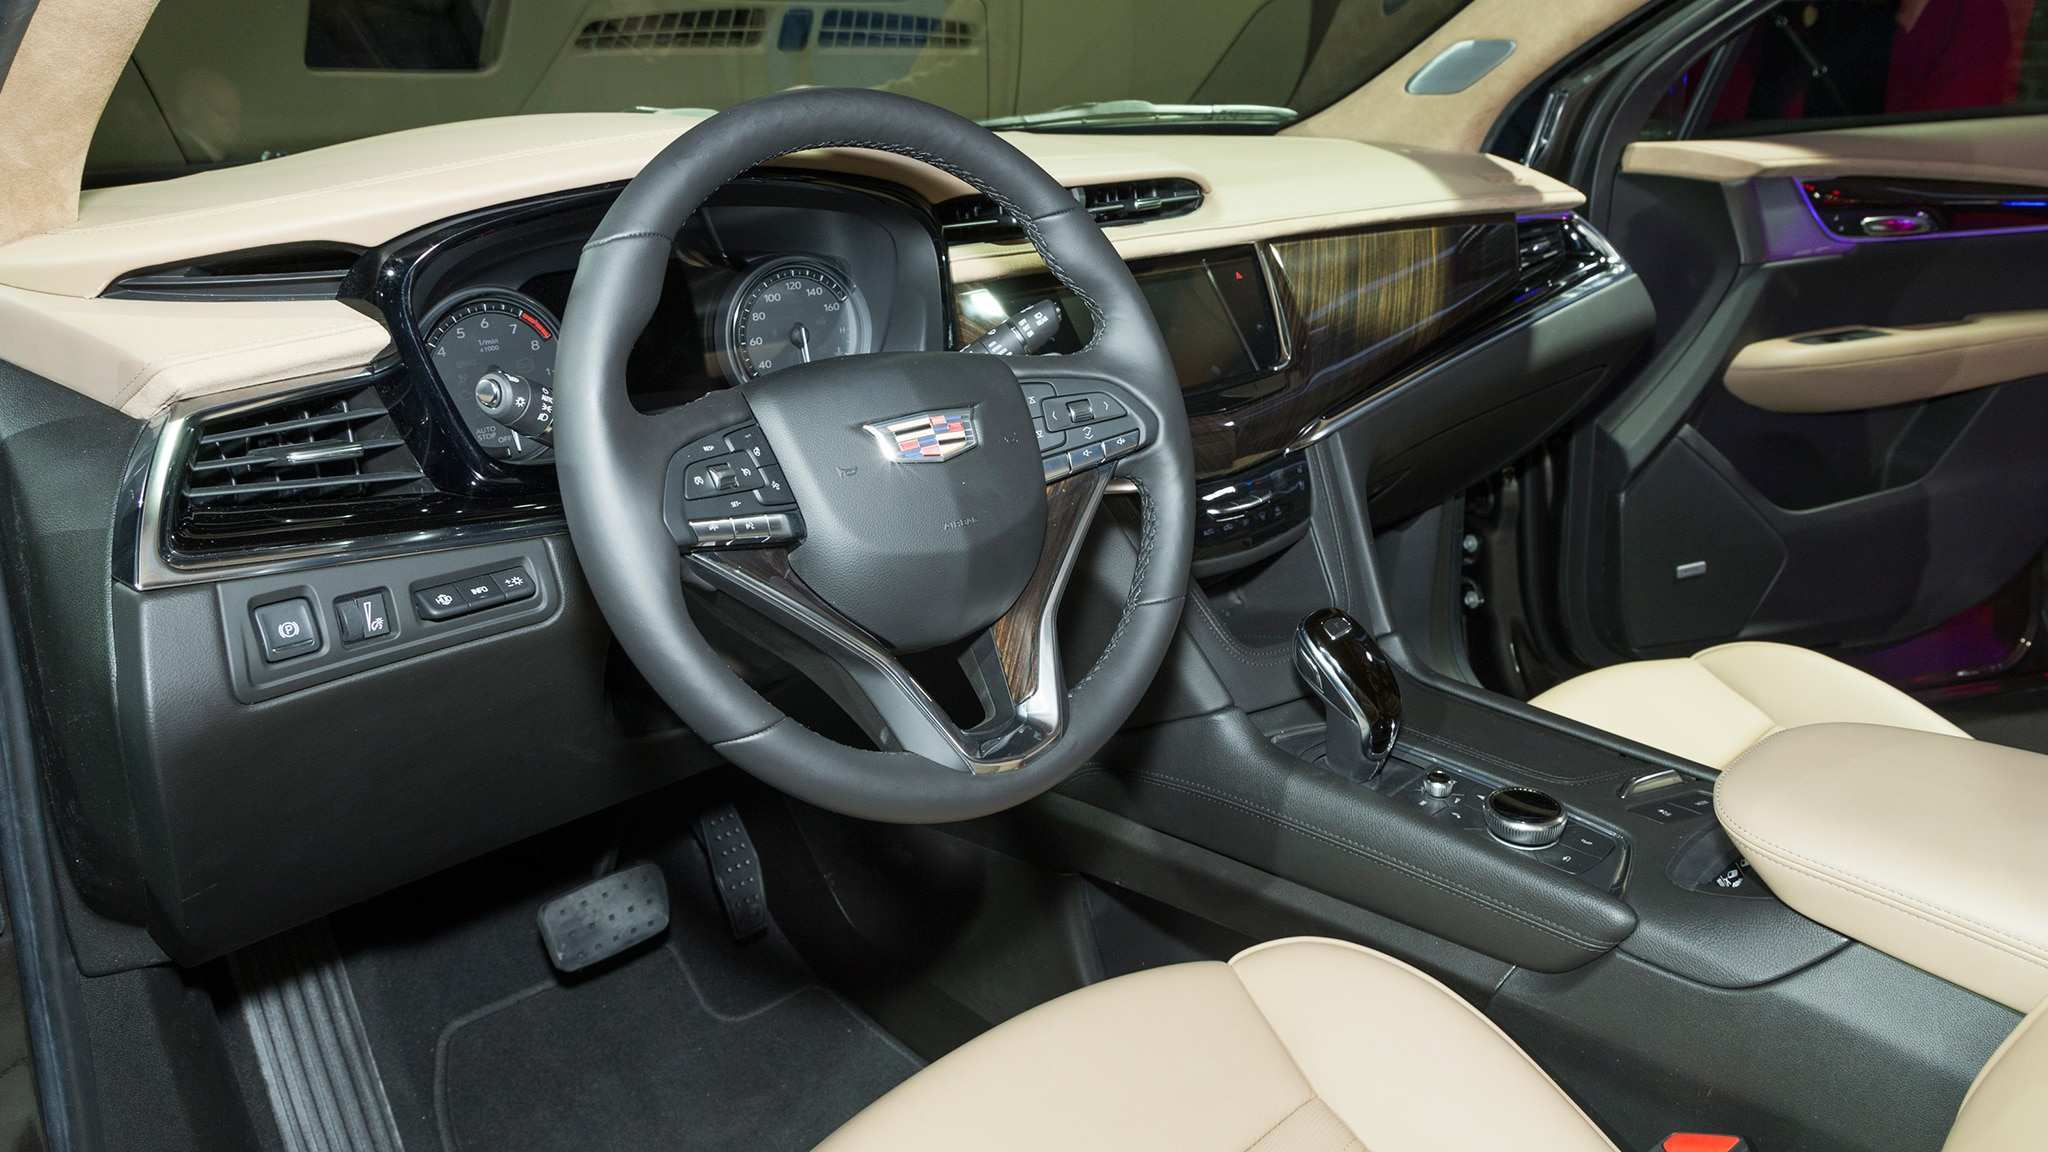 16 The Best 2020 Cadillac Xt6 Interior Photos